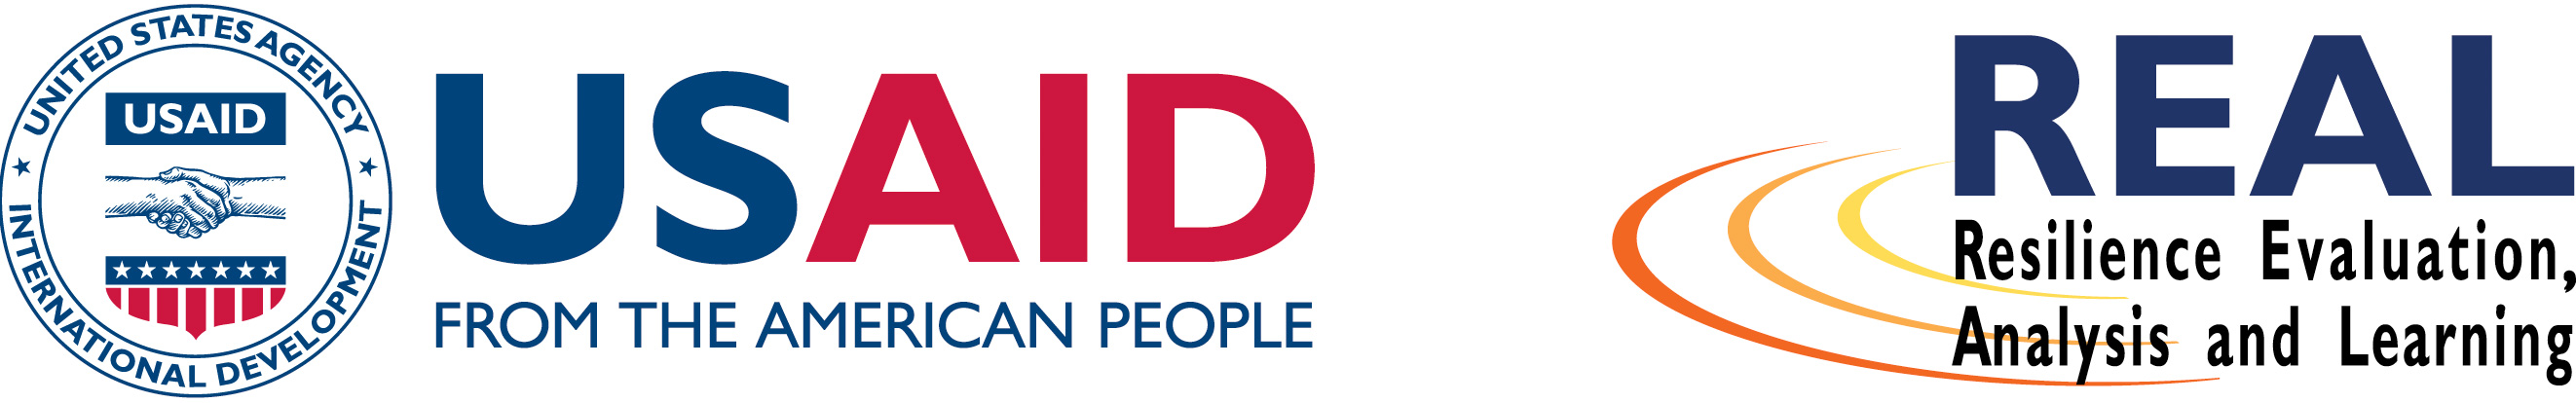 Logos for USAID and REAL